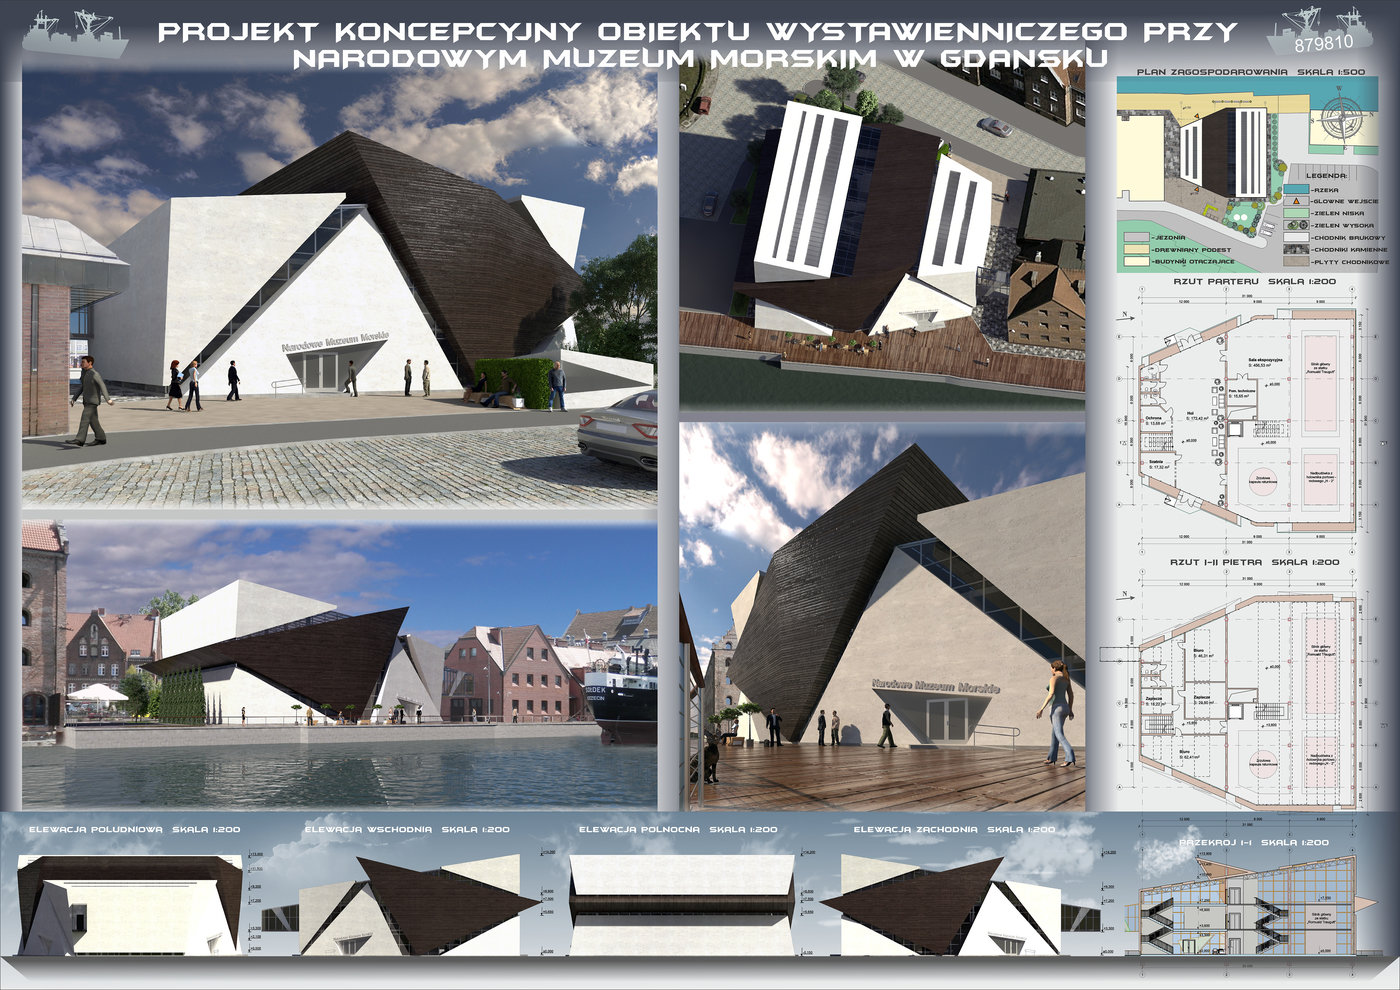 Project concept - Exhibition Building at the Maritime Museum in